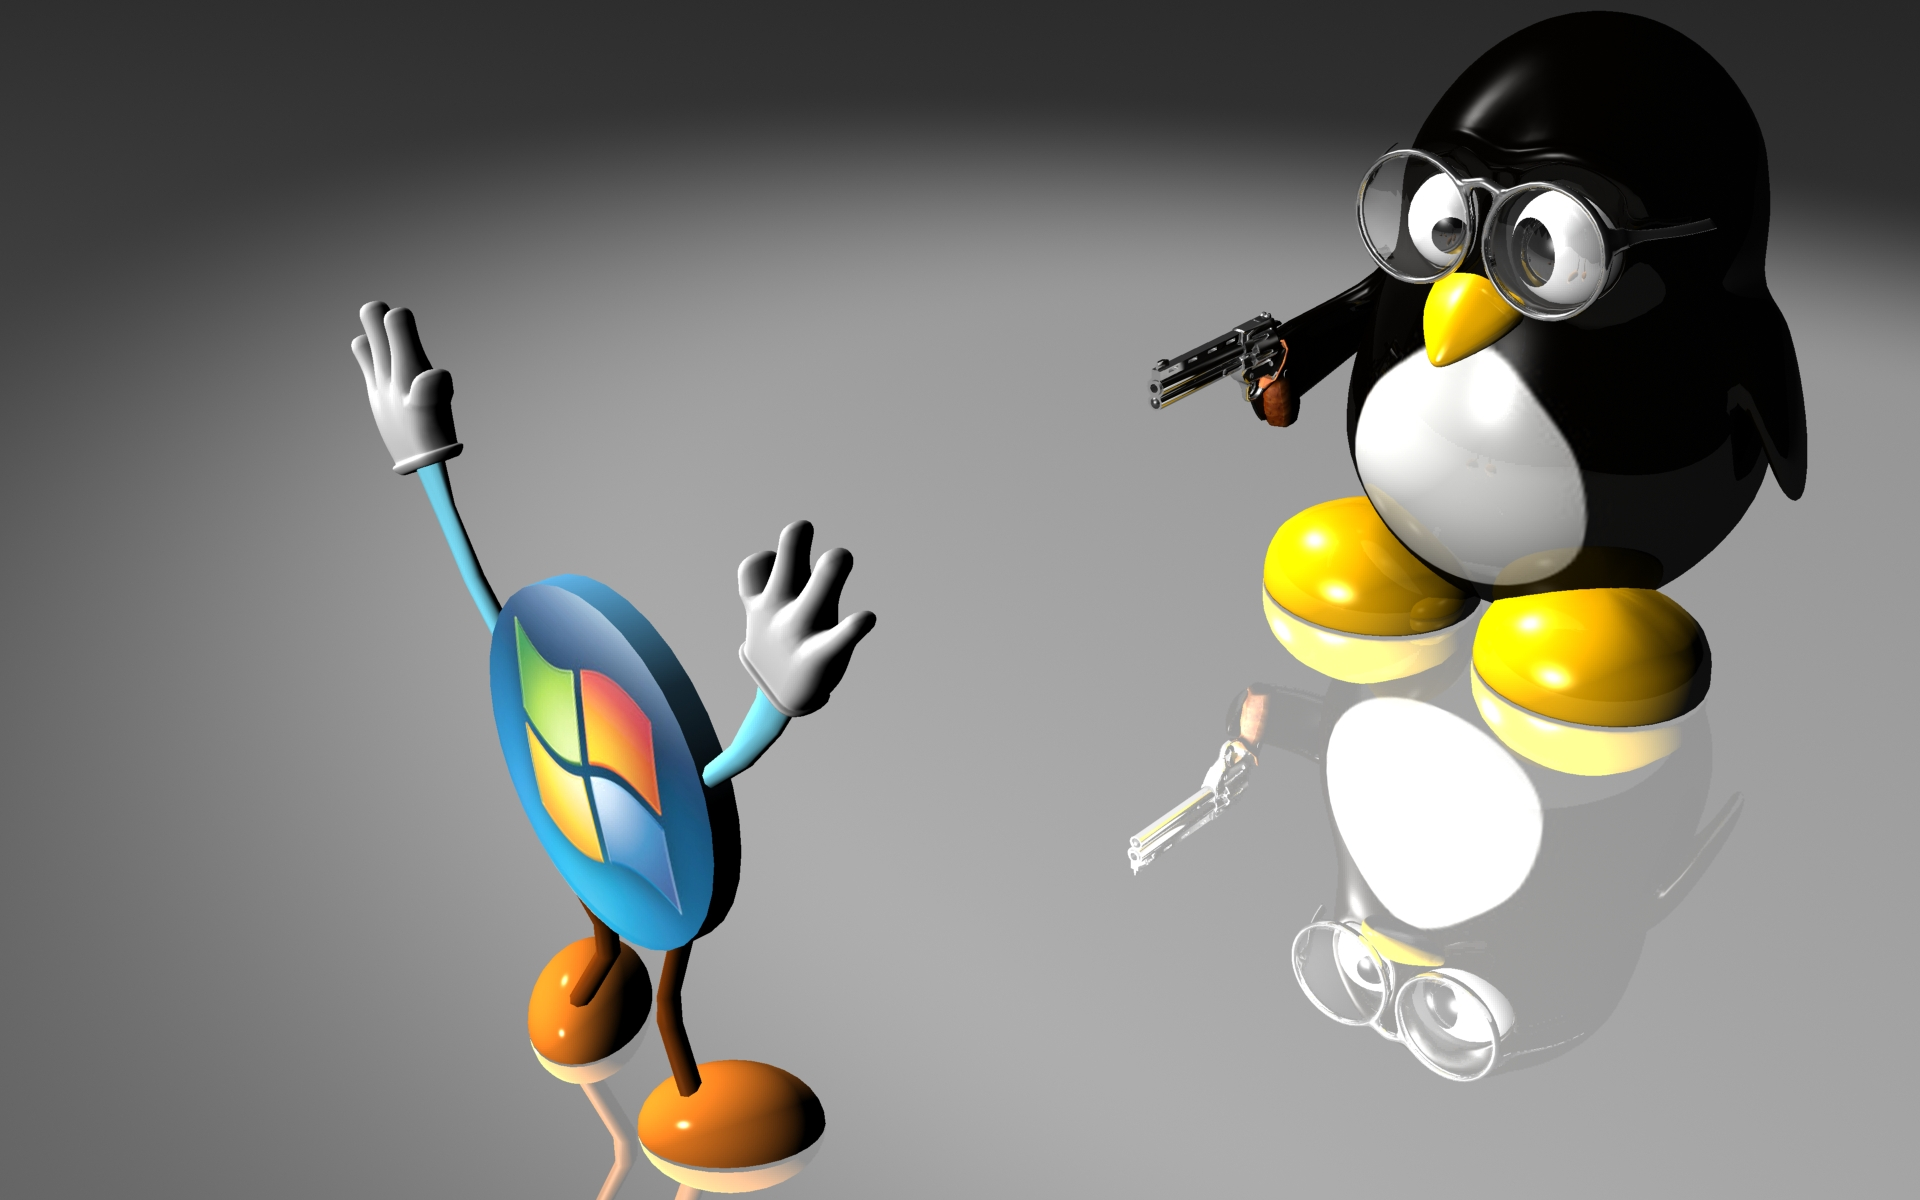 Technology - Linux  - Penguin - Tree - Save - Blue - Fight - Gun - Humor - Products - Windows Wallpaper